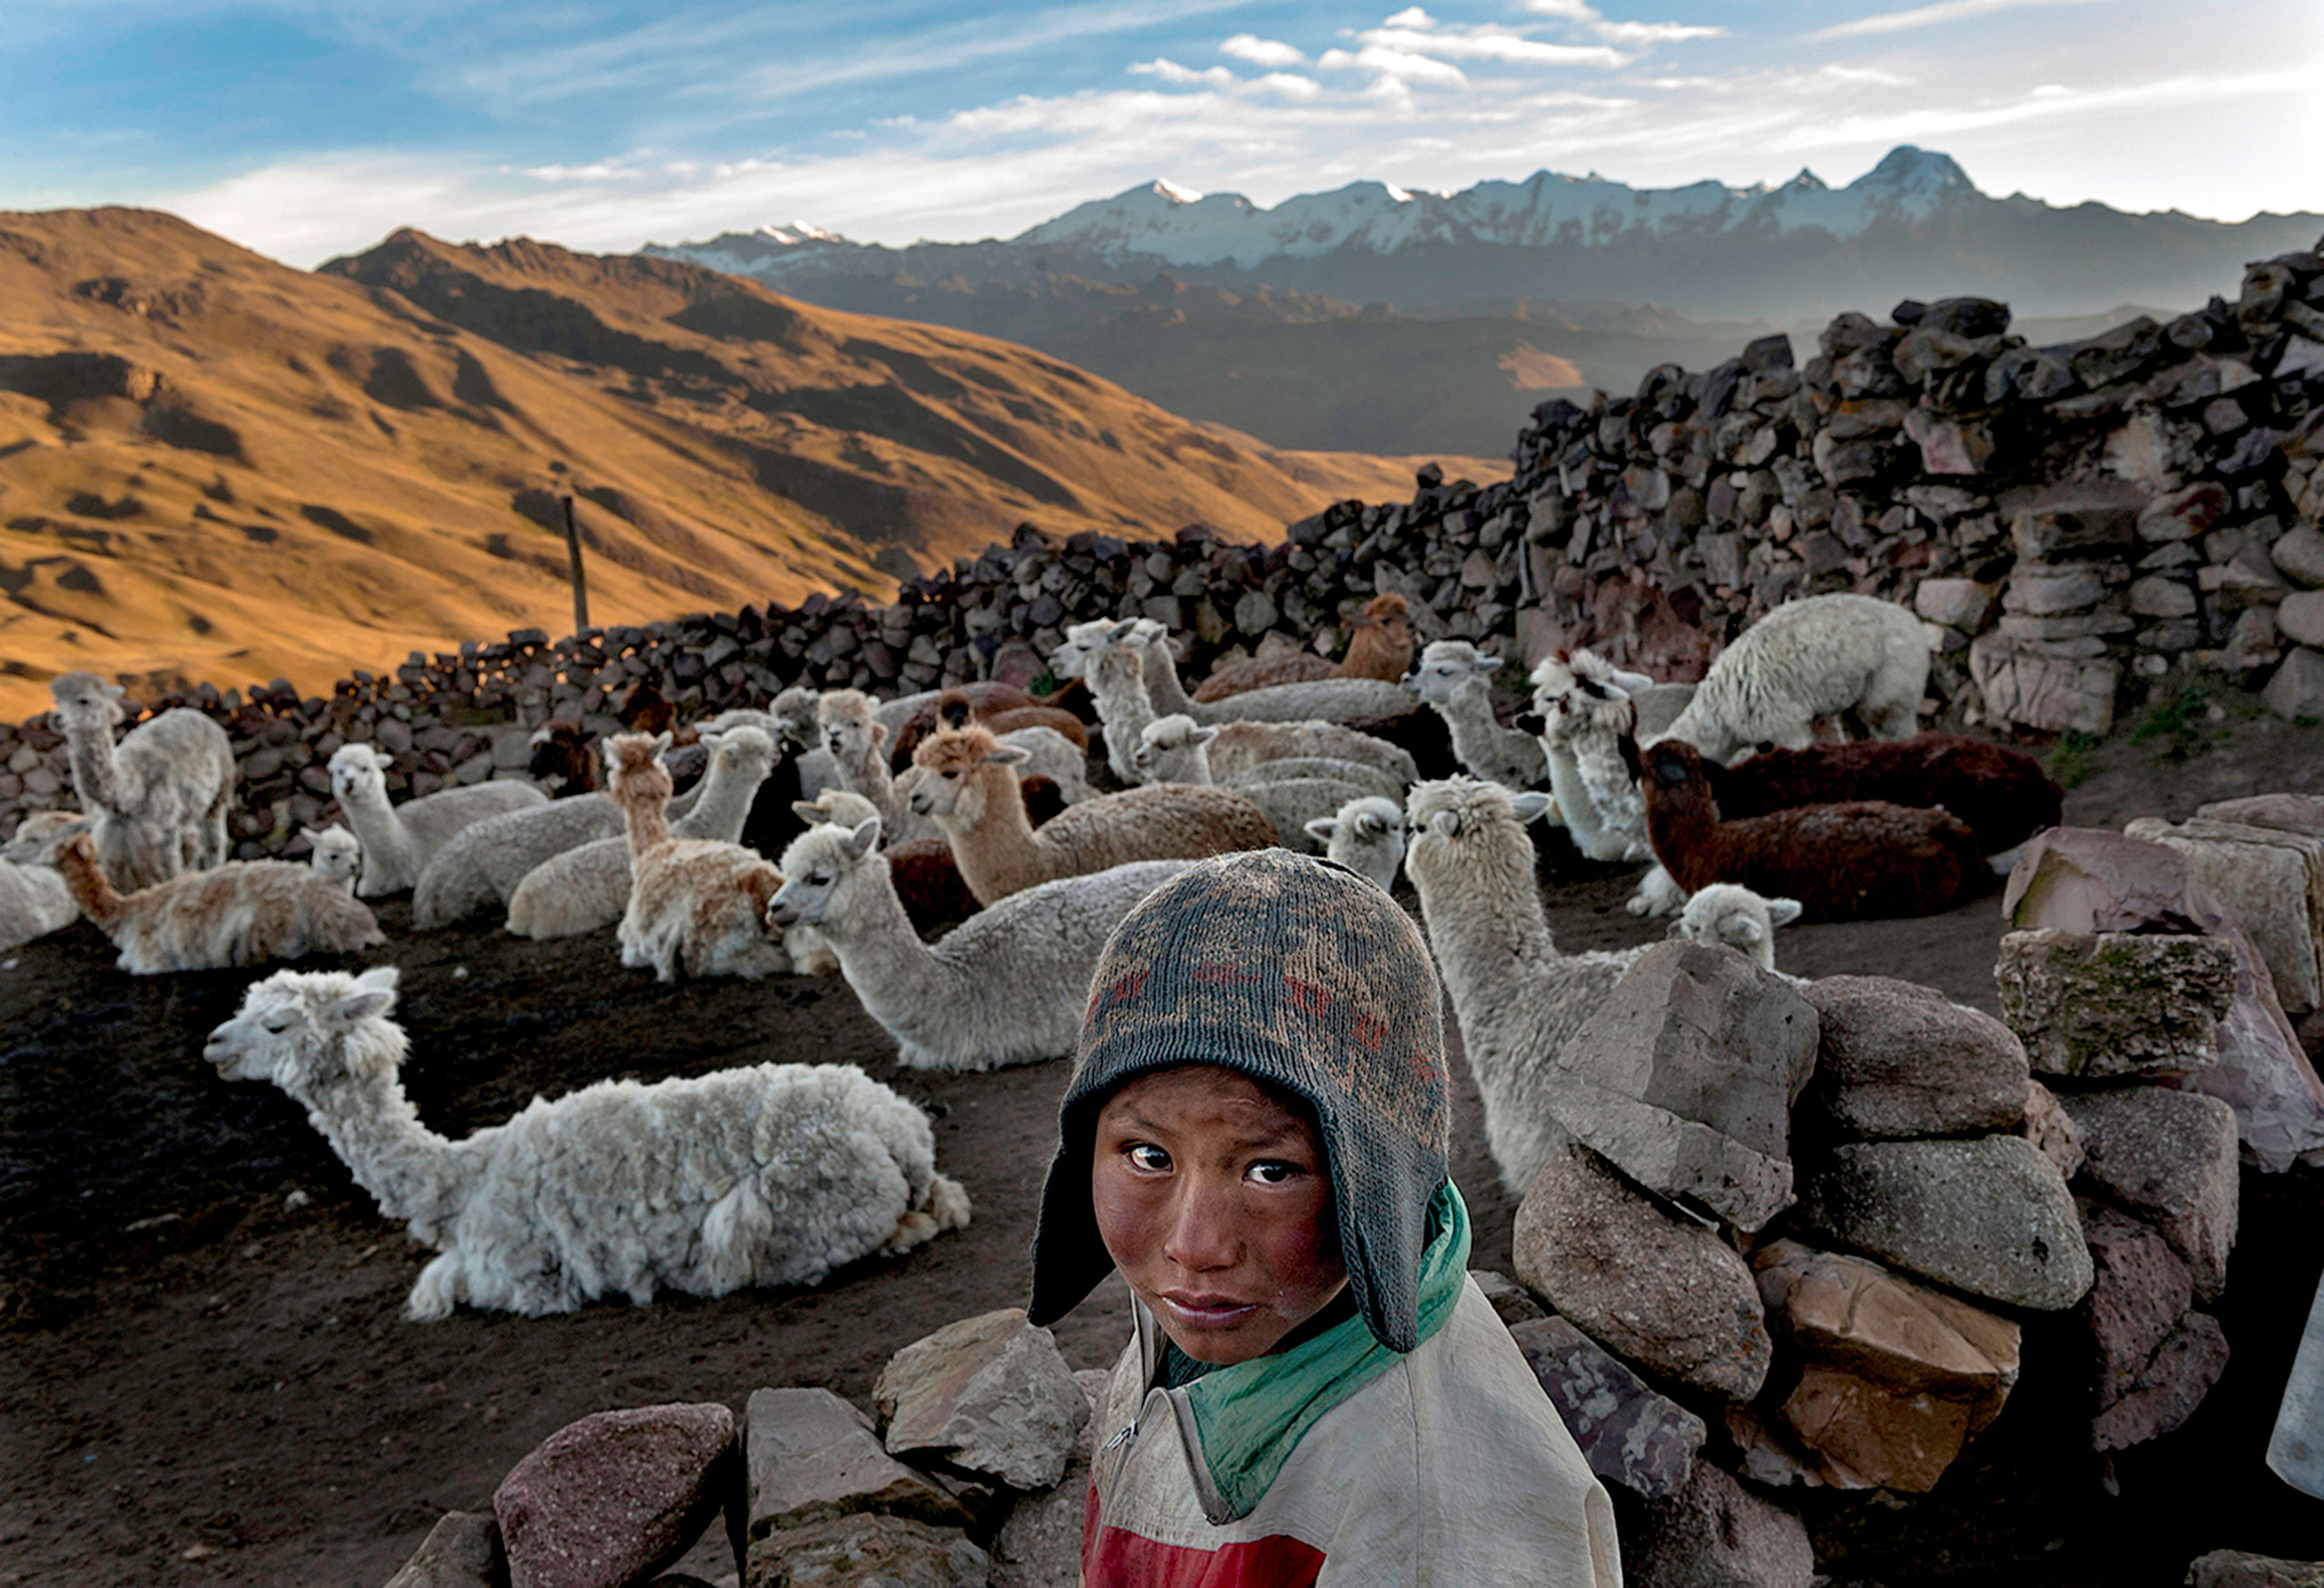 Following the death of his father, Alvaro Kalancha Quispe, 9, helps his family survive by herding. He opens the gate to the stone pen that holds the family's alpacas and llamas each morning so they can graze throughout the hillsides during the day. He then heads off to school, but must round them up again in the evening in the Akamani mountain range of Bolivia in an area called Caluyo, about an hour from the city of Qutapampa.                               In this part of the world, the highlands of Bolivia, approximately 13,000 feet above sea level, residents live in homes with no insulation, no electricity, and no beds. Their water comes from streams that run off the snow-covered mountains. Their livelihood lies with their animals, for each animal produces about three pounds of fur each year, and each pound of fur is sold for 18 bolivianos, which amounts to about $2.50 U.S. All in all, this family may earn about $200 of income each year from the herd they watch over.